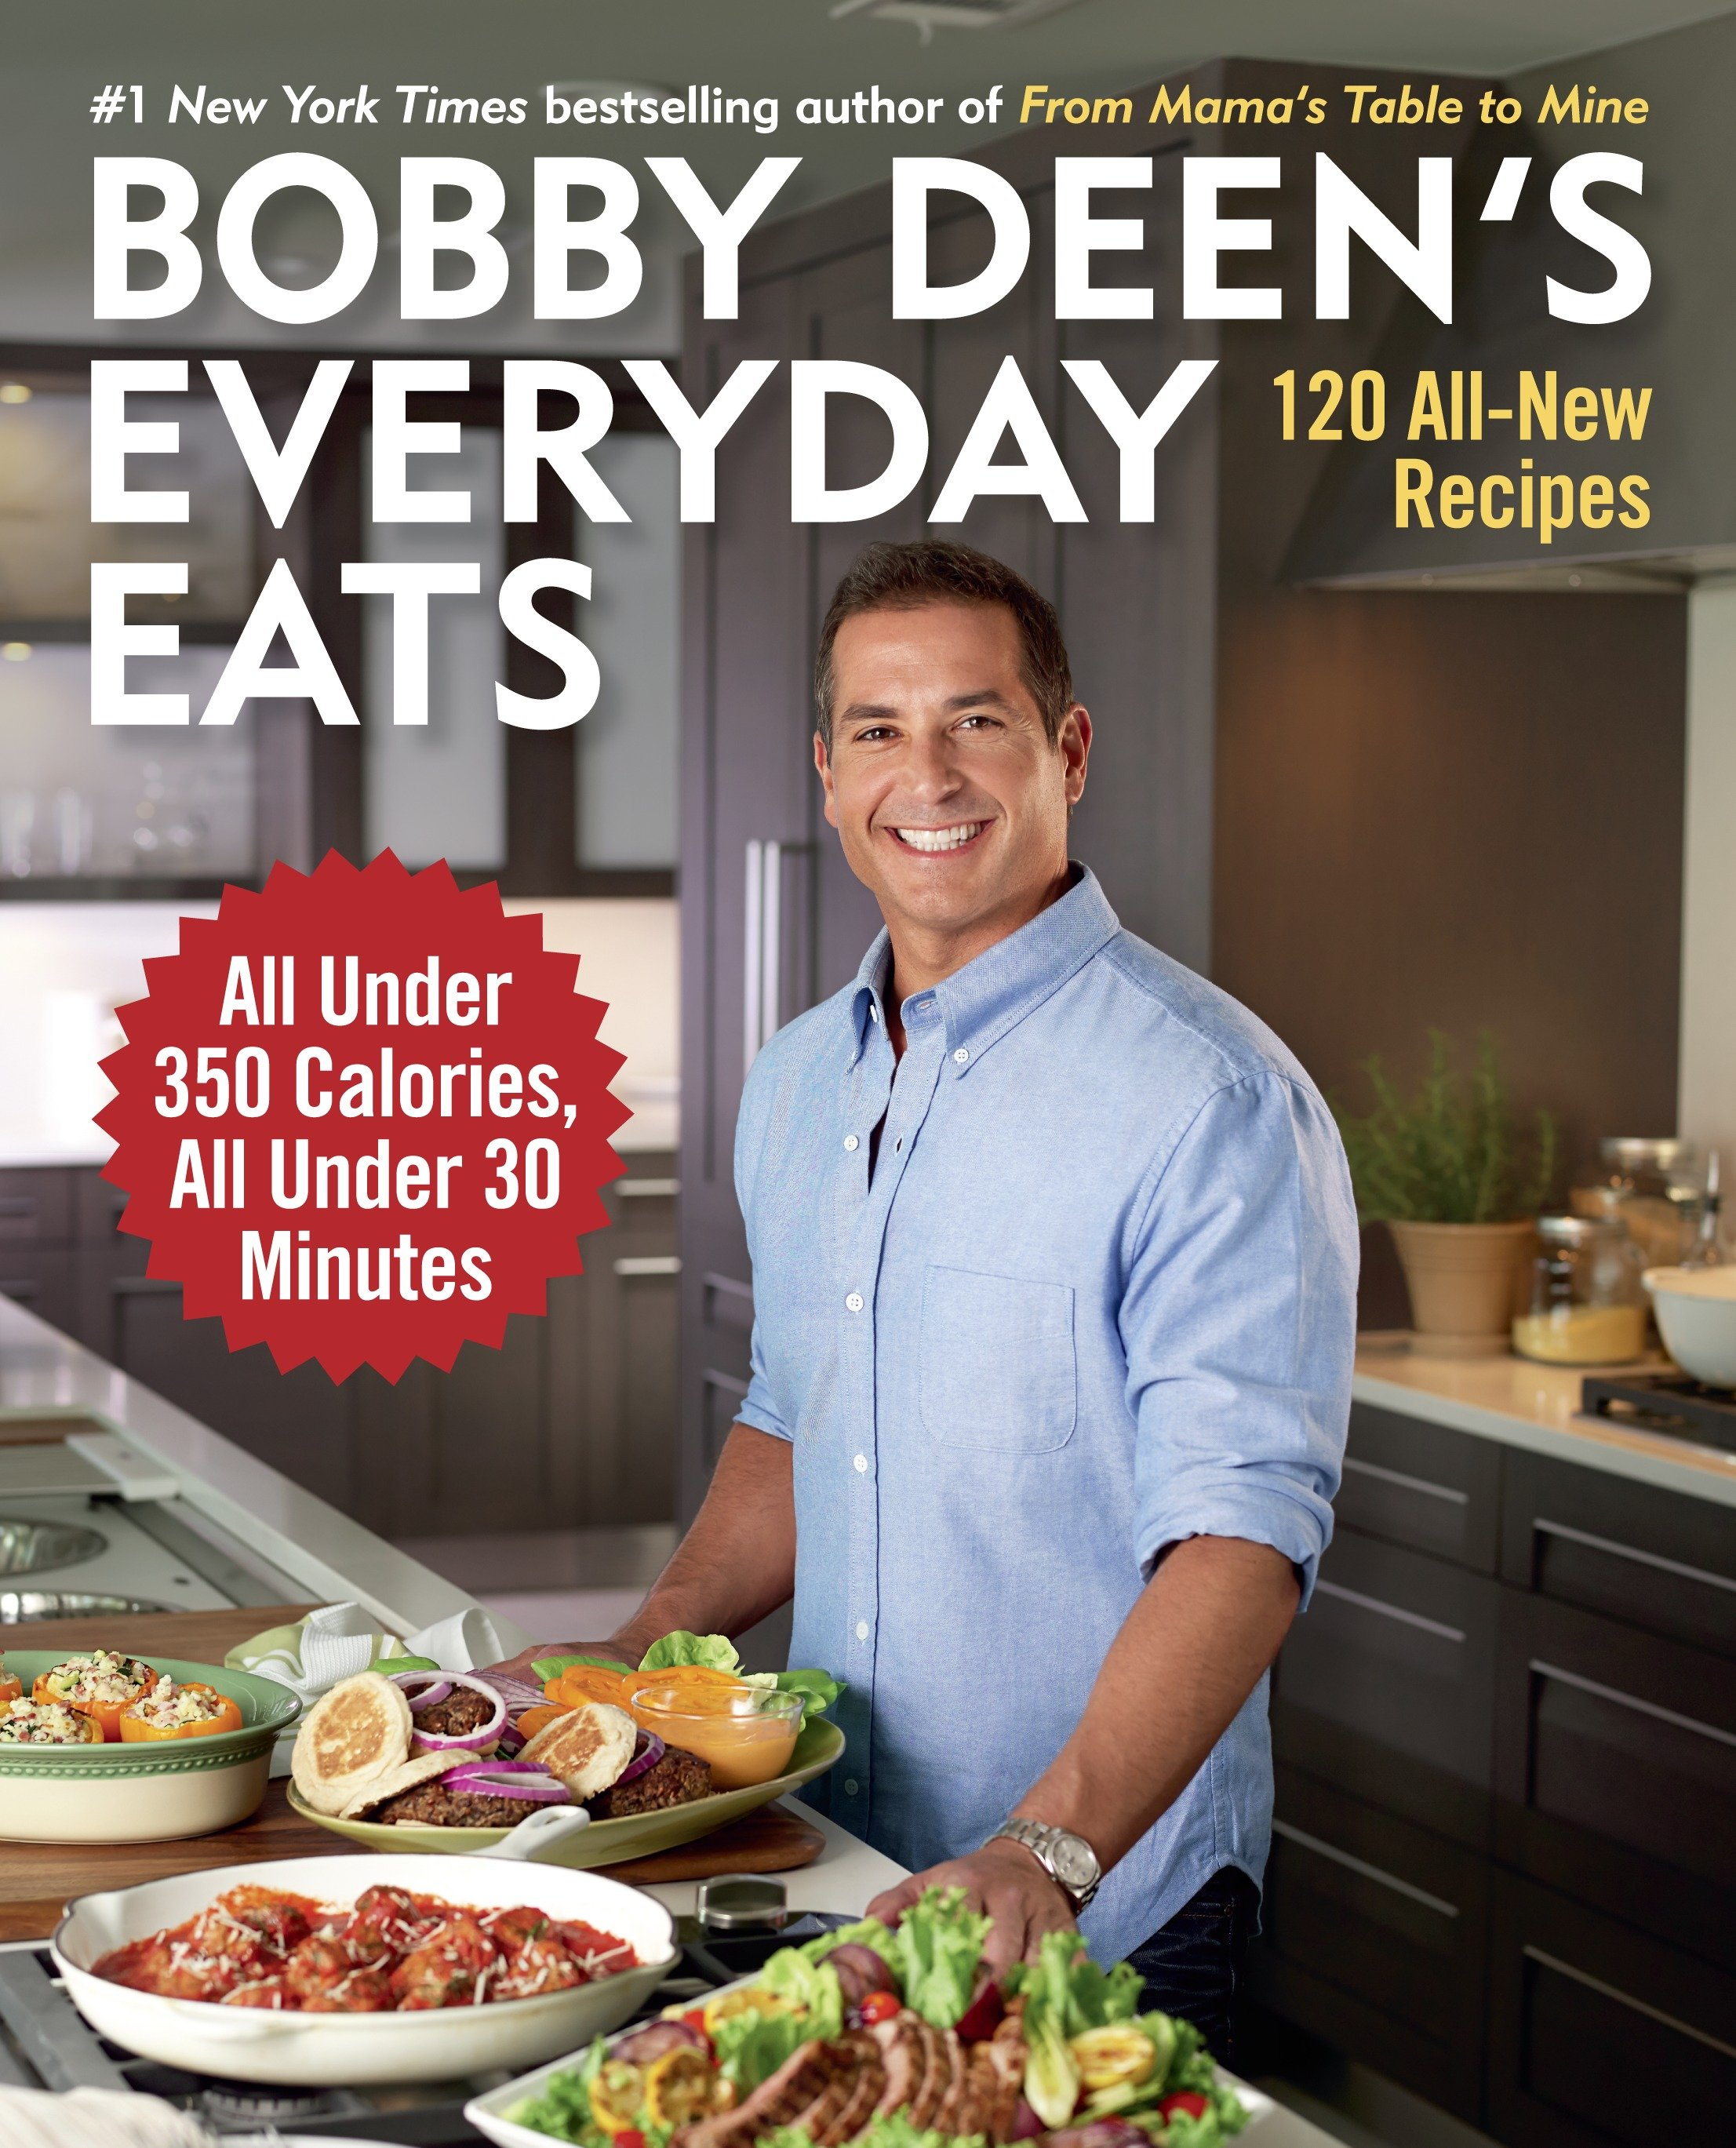 Bobby Deen's everyday eats 120 all-new recipes, all under 350 calories, all under 30 minutes cover image